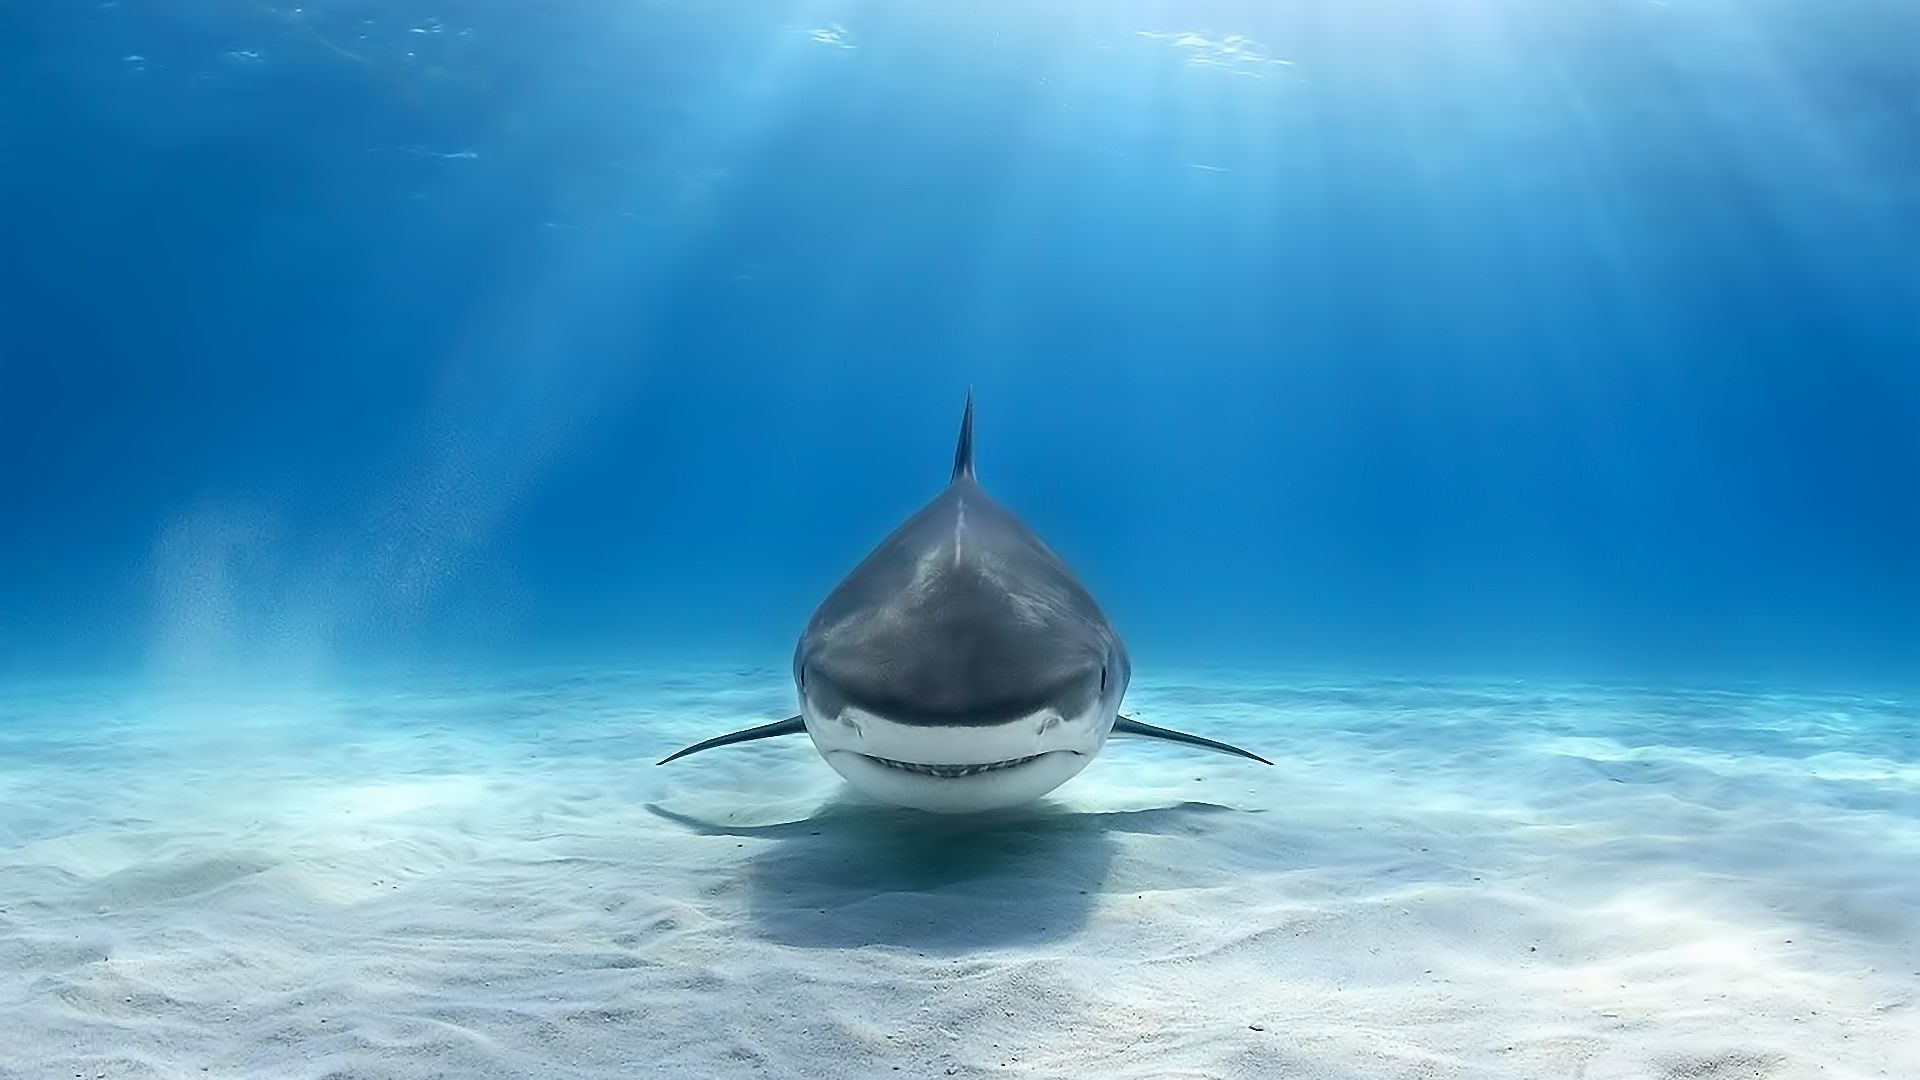 Ocean Photo Underwater With Sharks